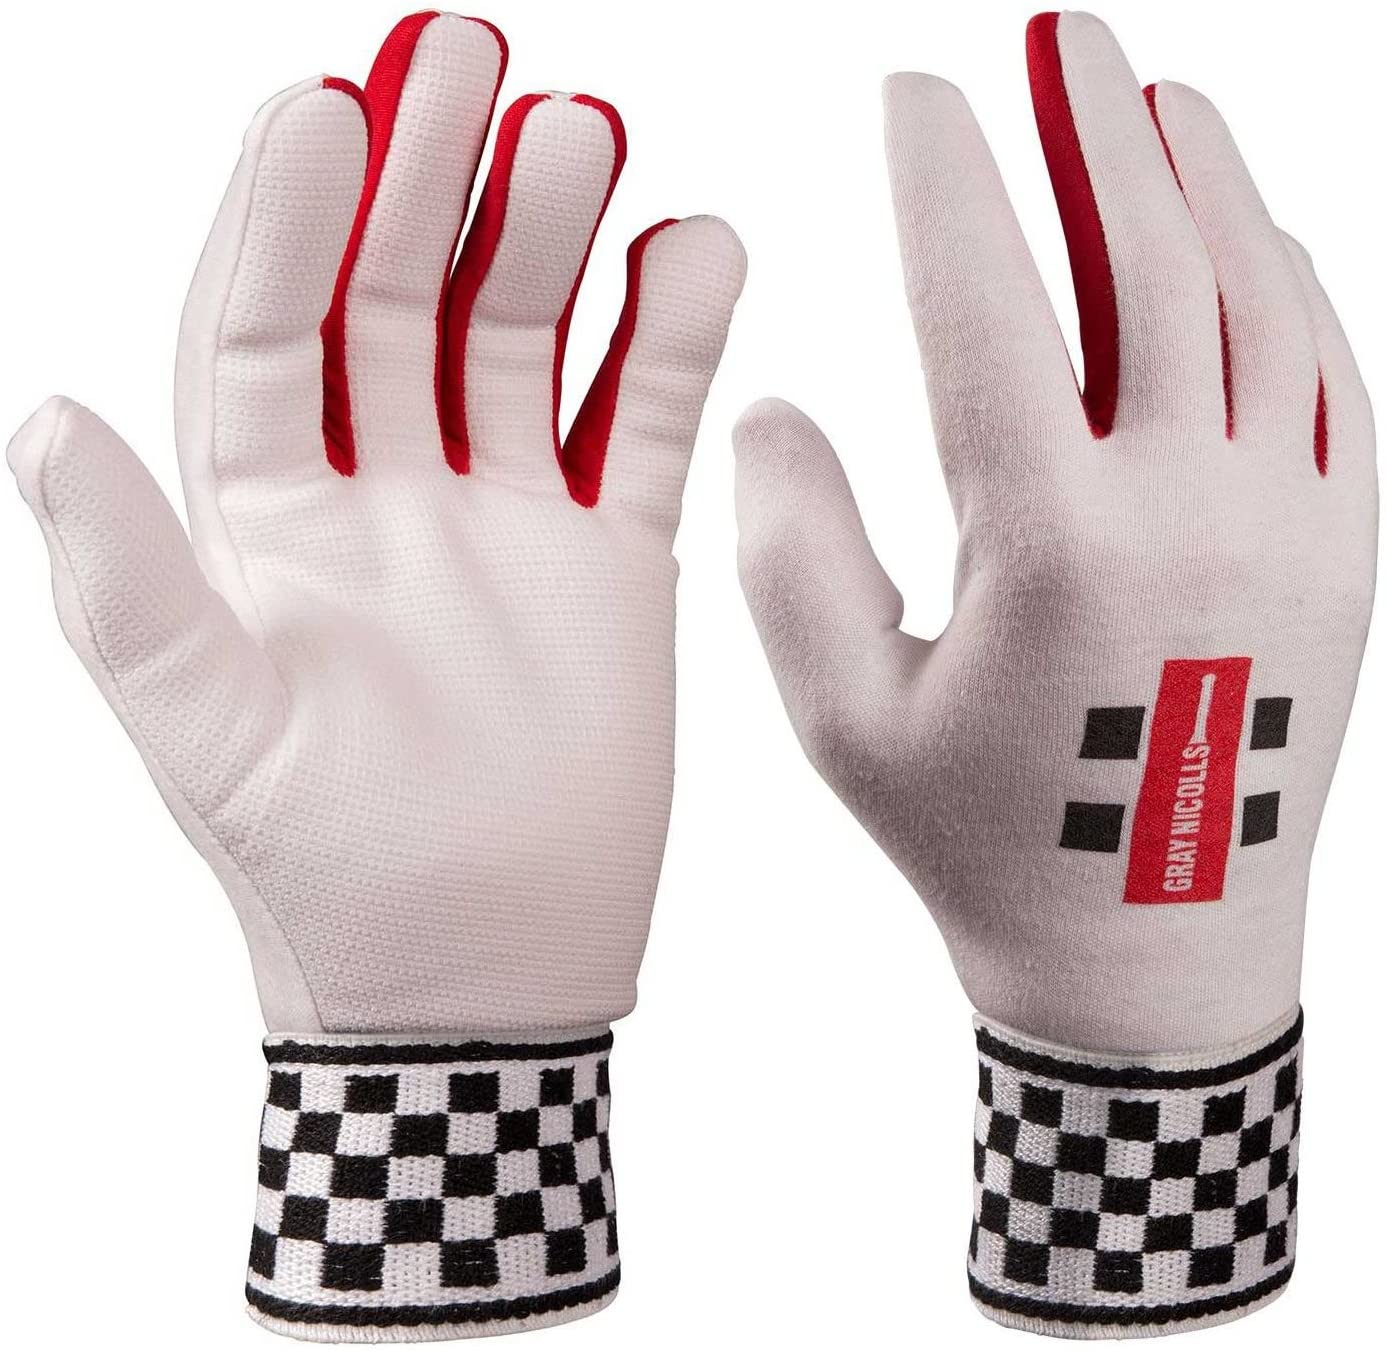 Gray-Nicolls Padded Cotton Wicket Keeping Inner Gloves